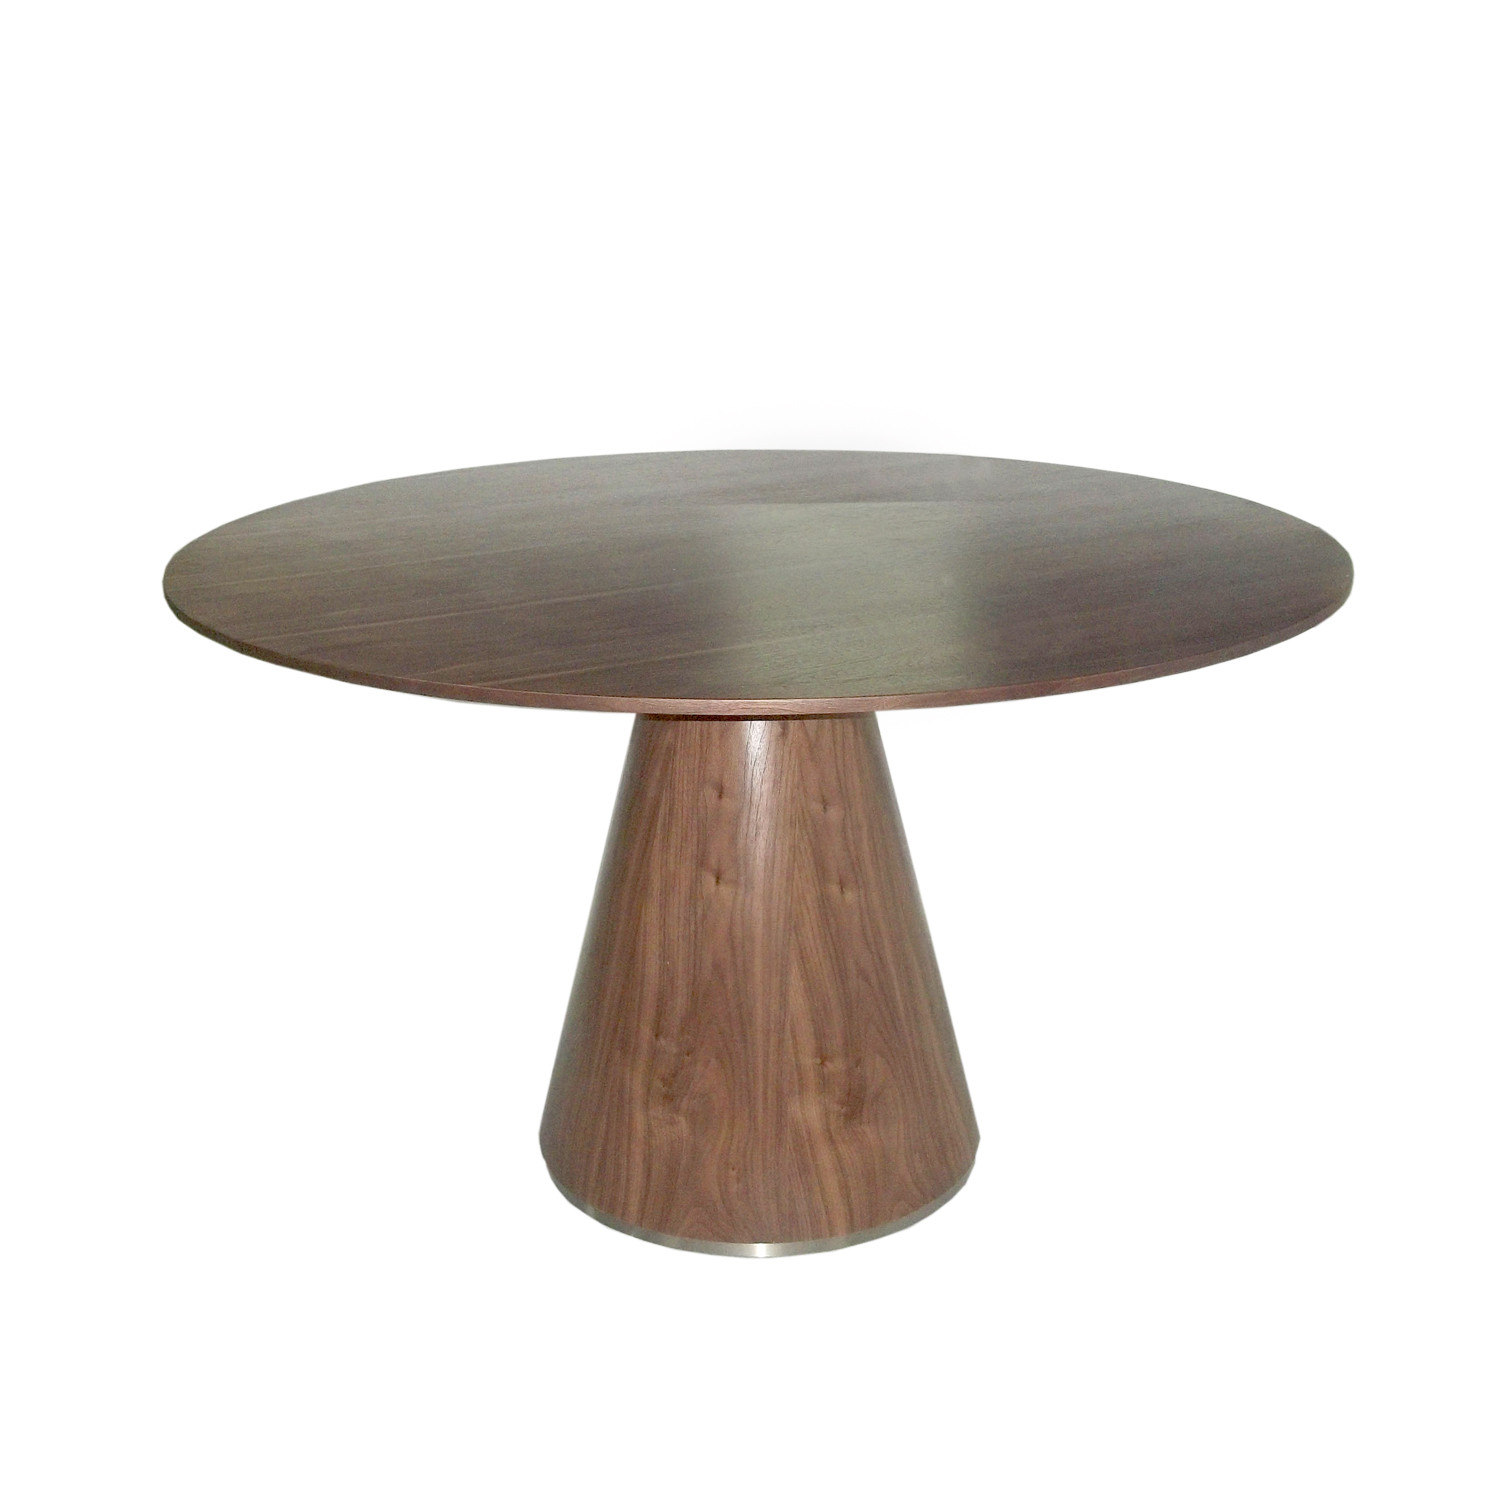 Round Otago Dining Table Moes Furniture Touch of Modern : 7d37f68f3af5388ccf040be76e9719bclarge from www.touchofmodern.com size 1500 x 1500 jpeg 148kB